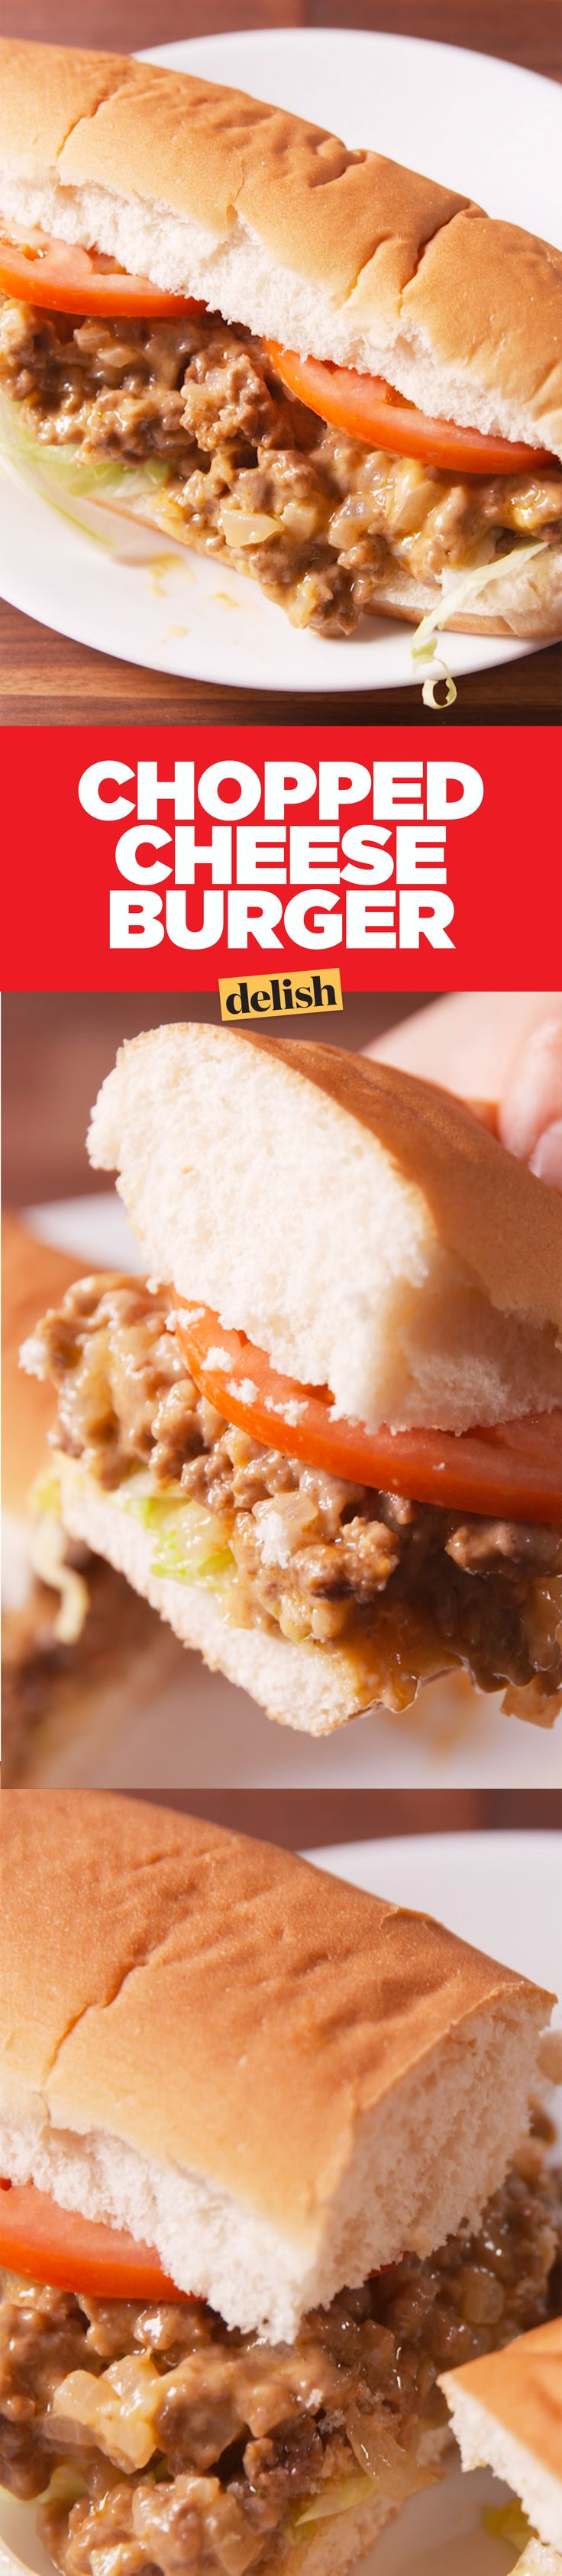 If you like Philly cheesesteaks, this Chopped Cheese Burger will blow your mind. Get the recipe on Delish.com.